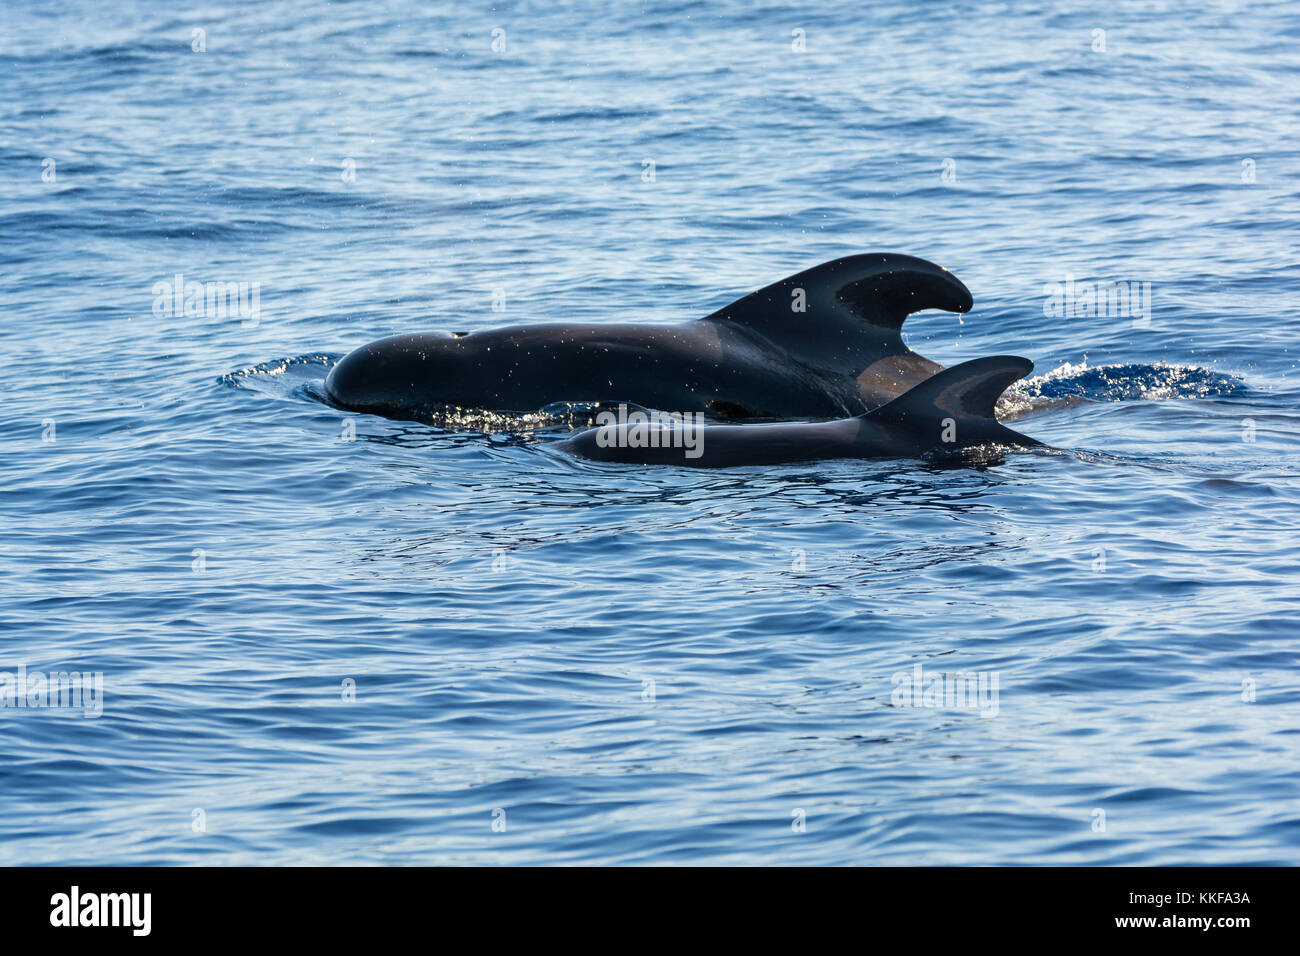 Dolphins and whales watching in Sao Miguel Island, Azores, Portugal - Stock Image